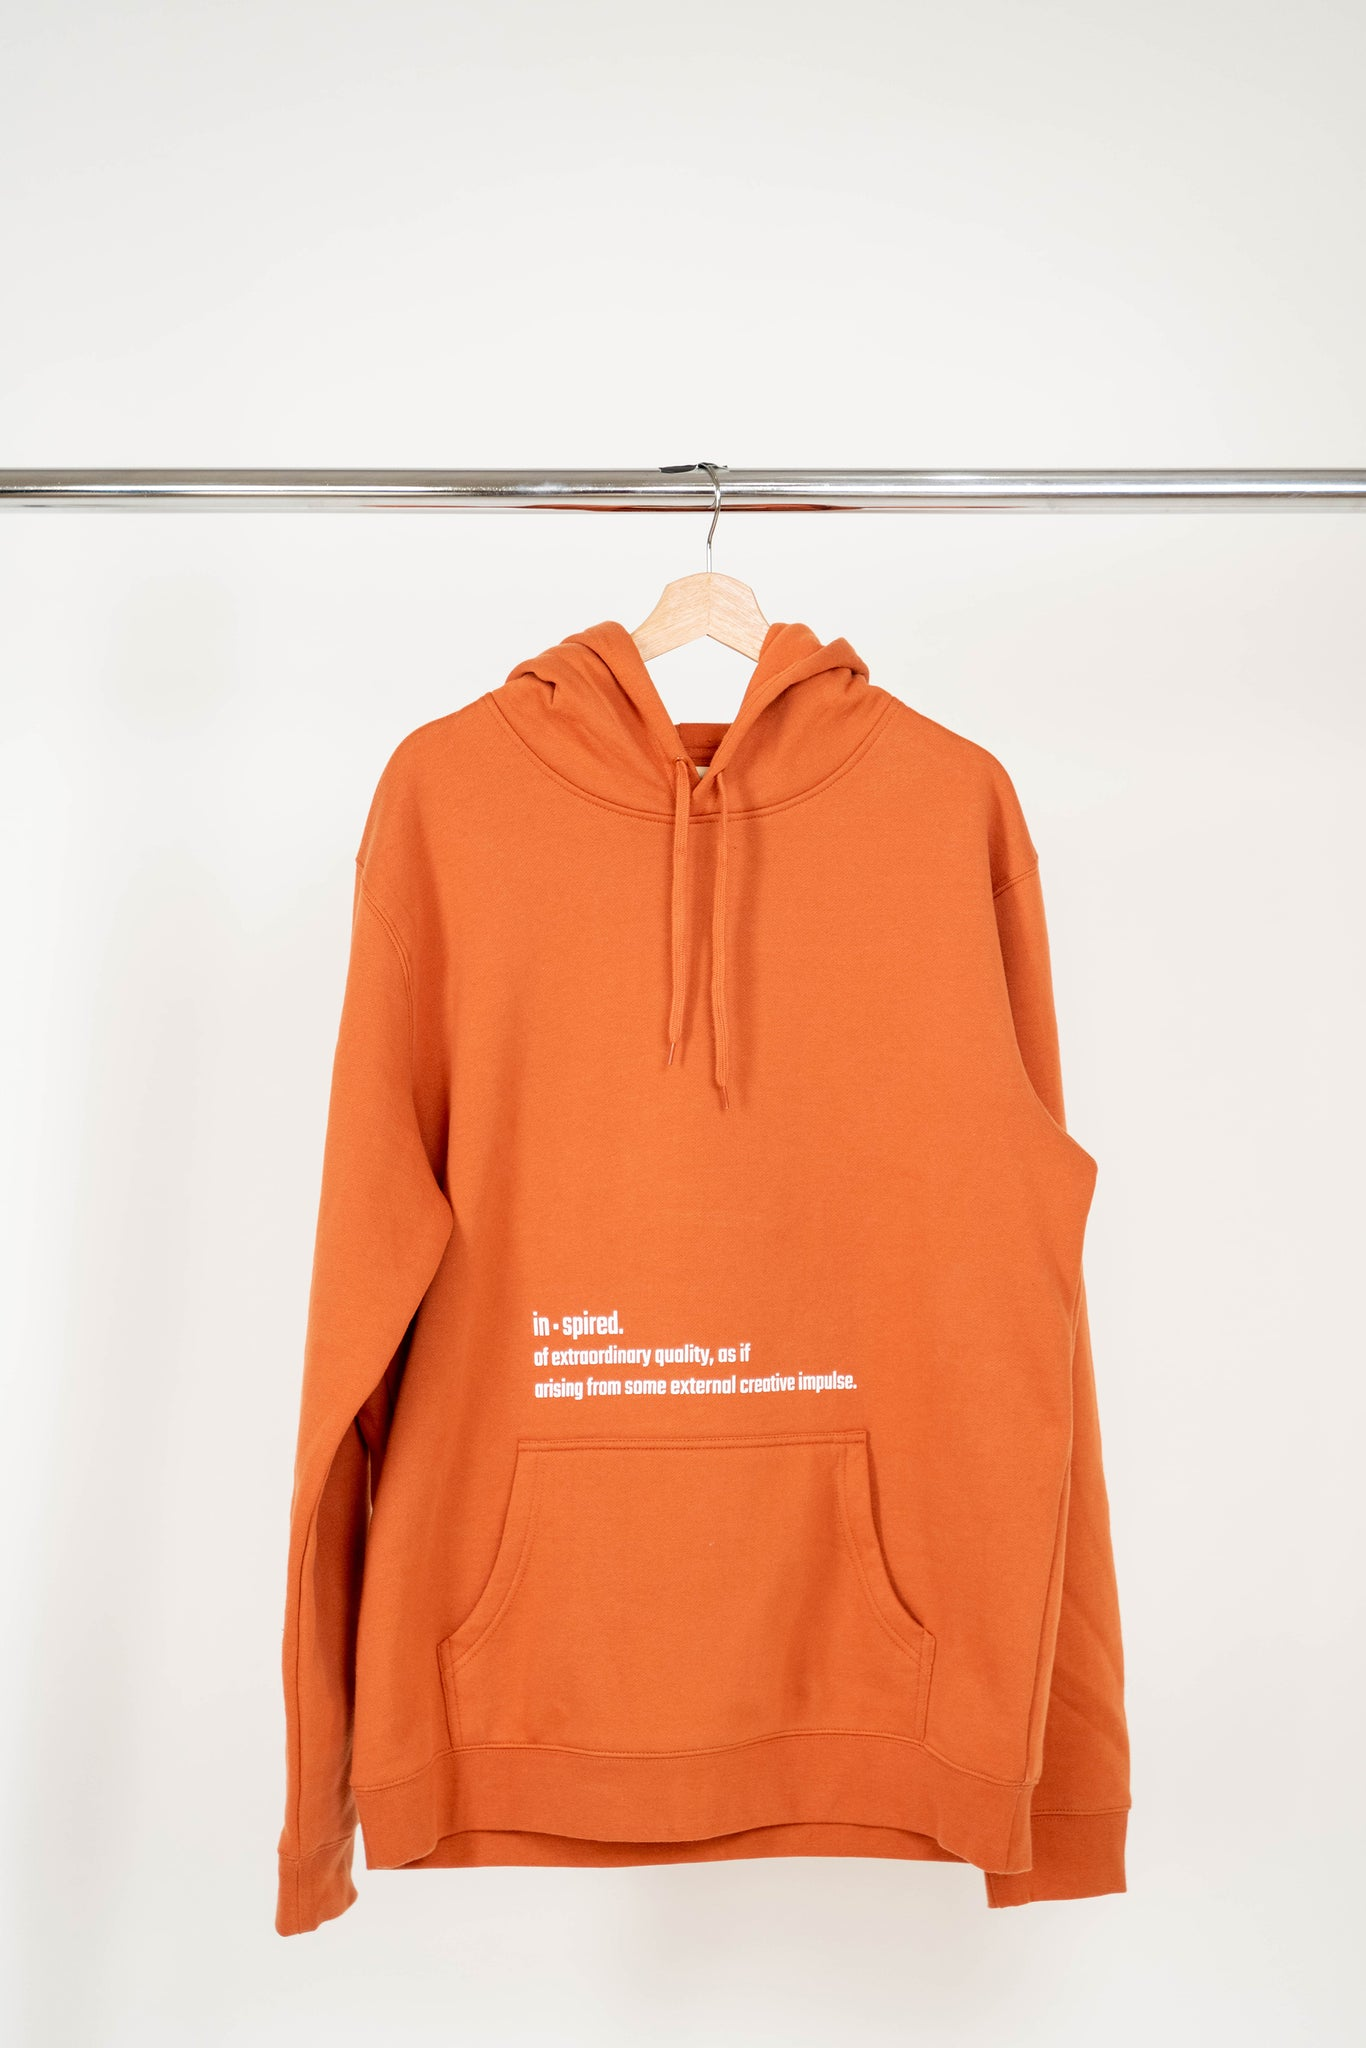 In·spired Copper Hoodie